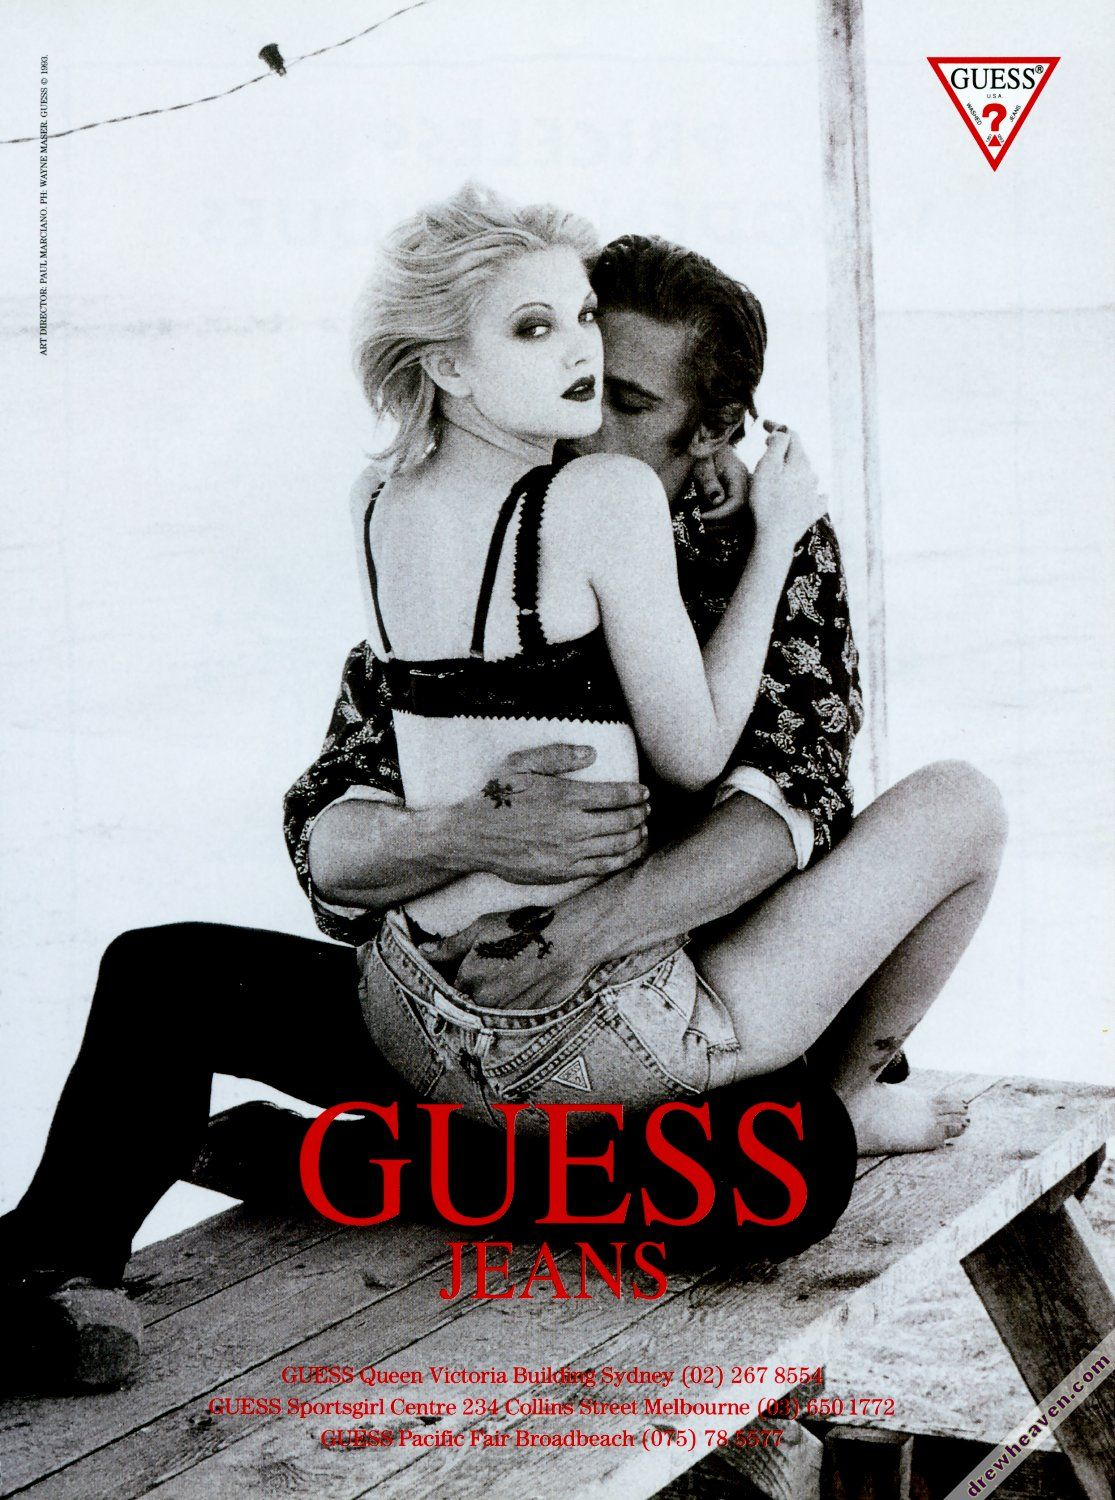 Drew Barrymore Guess Ad 1990 S Guess Ads